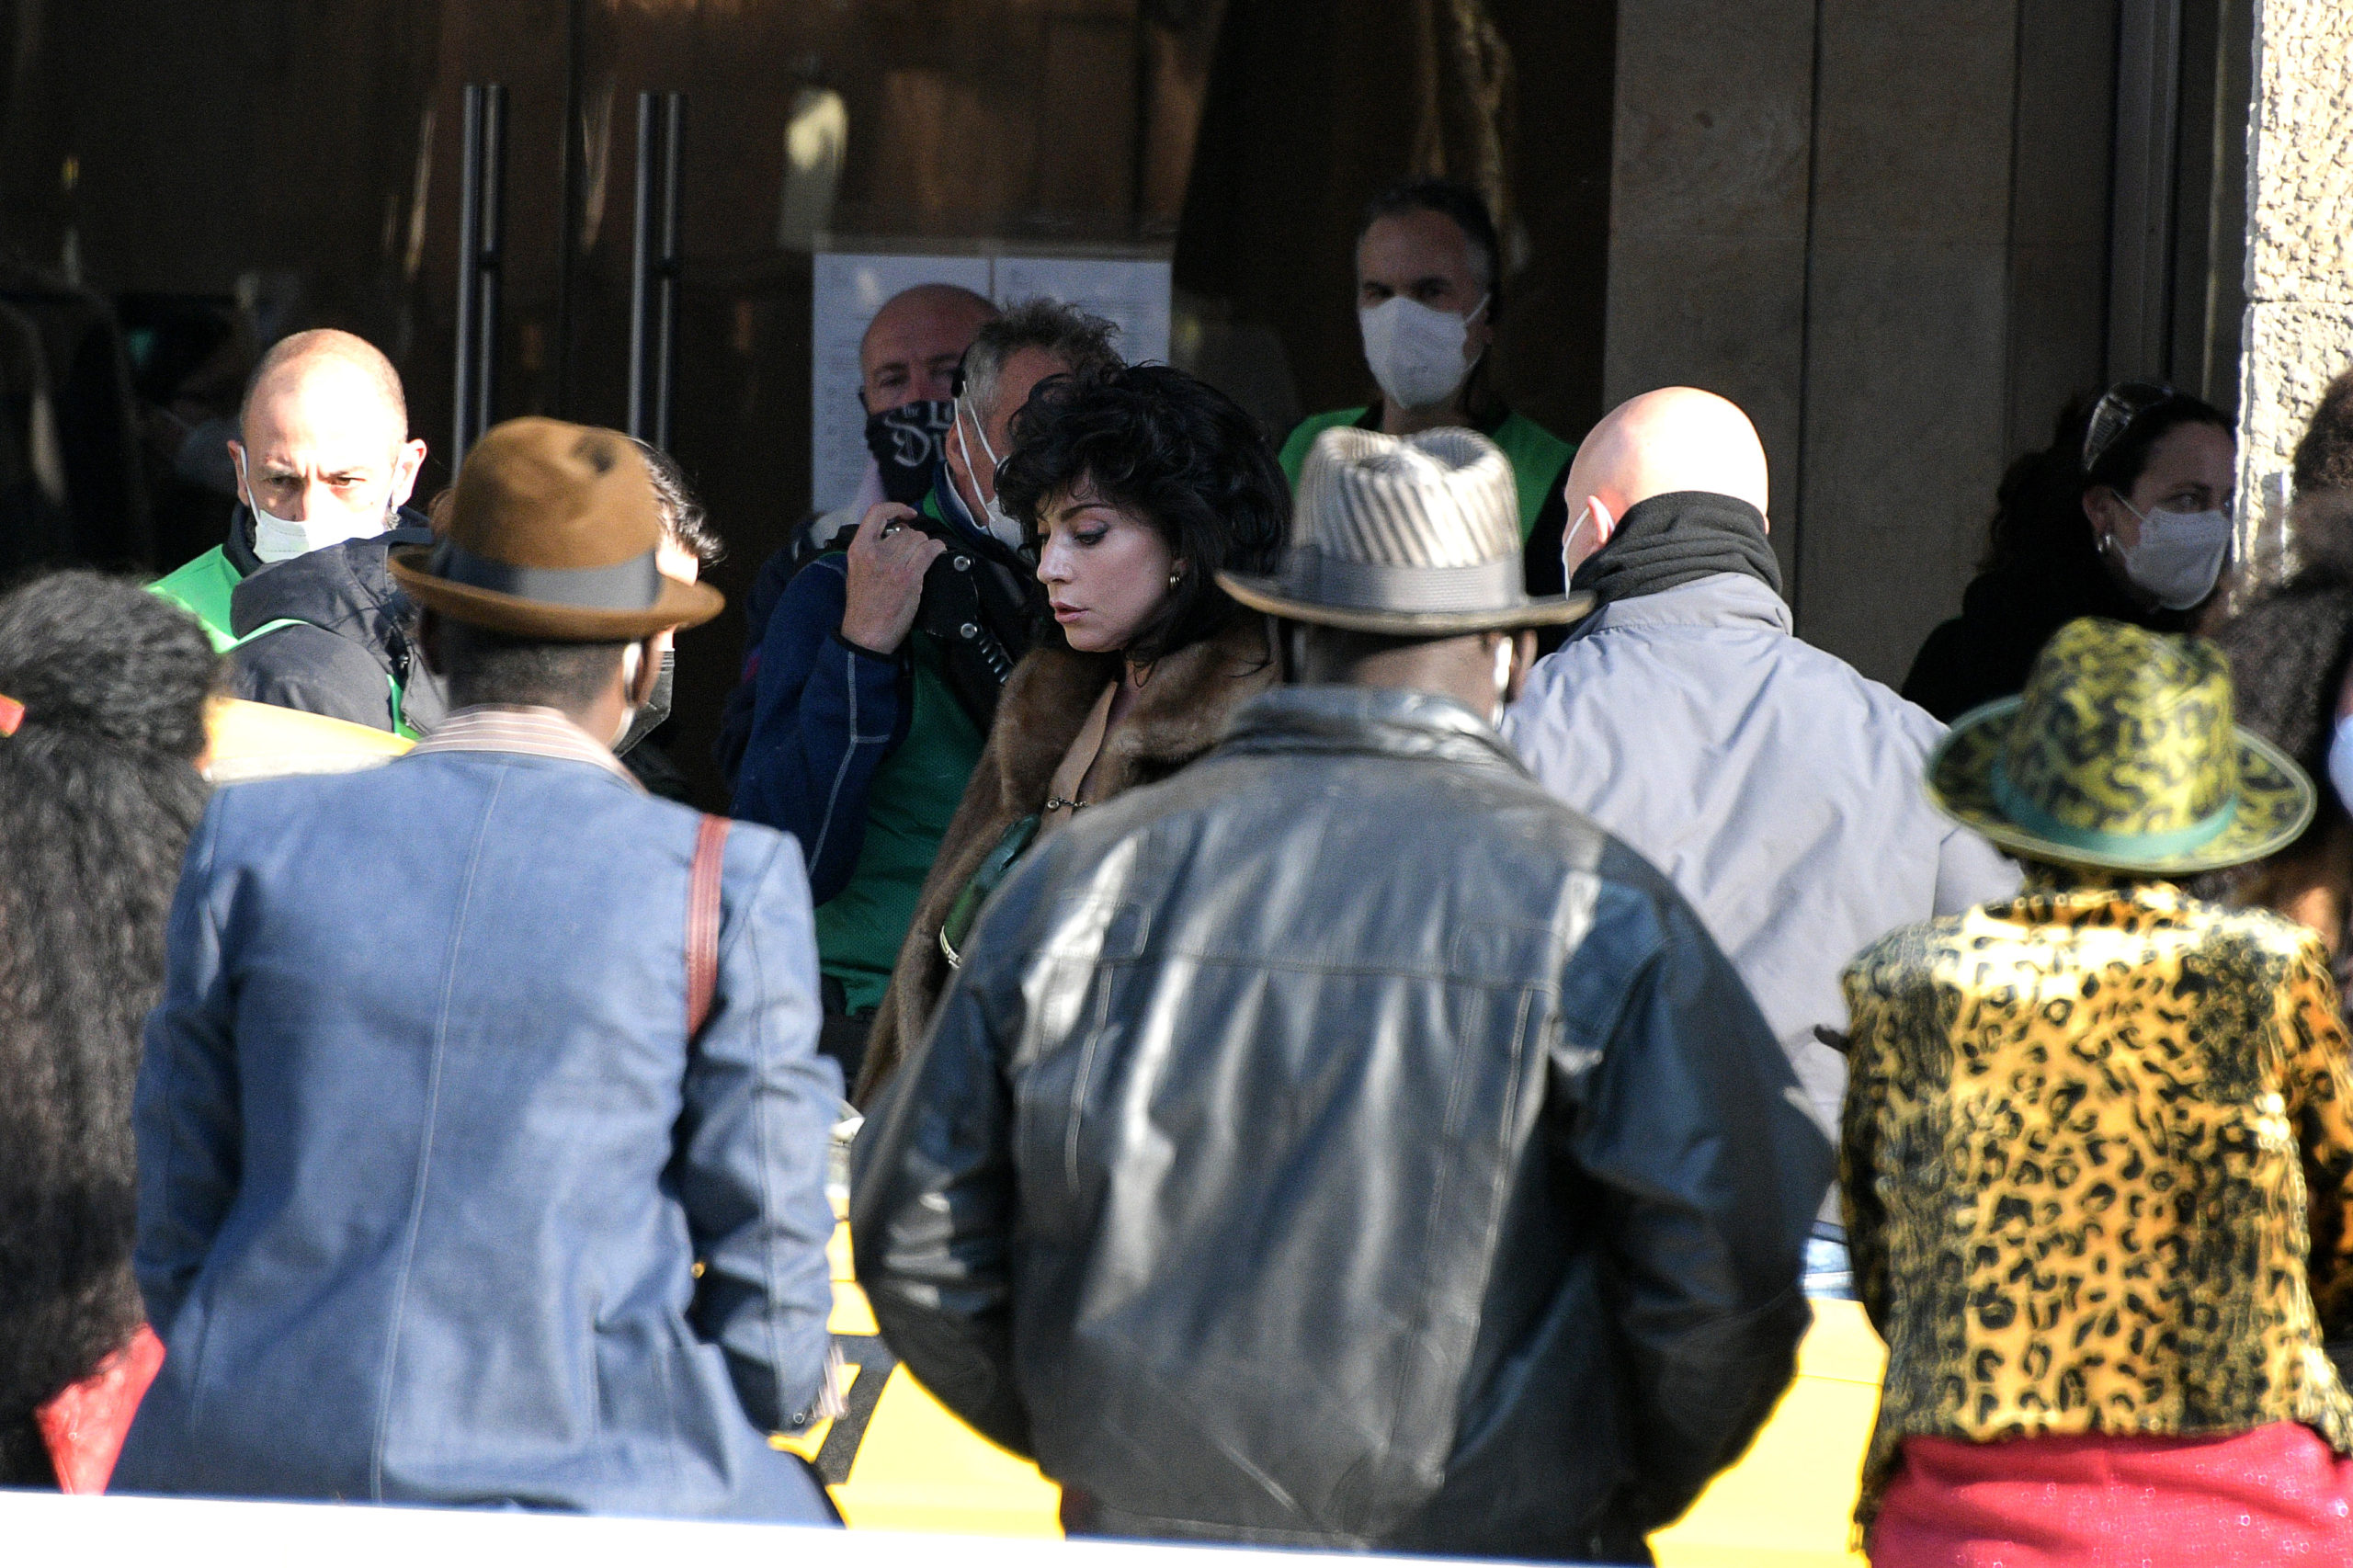 Pictured: Lady Gaga Picture by: Simone Comi / IPA / SplashNews.com